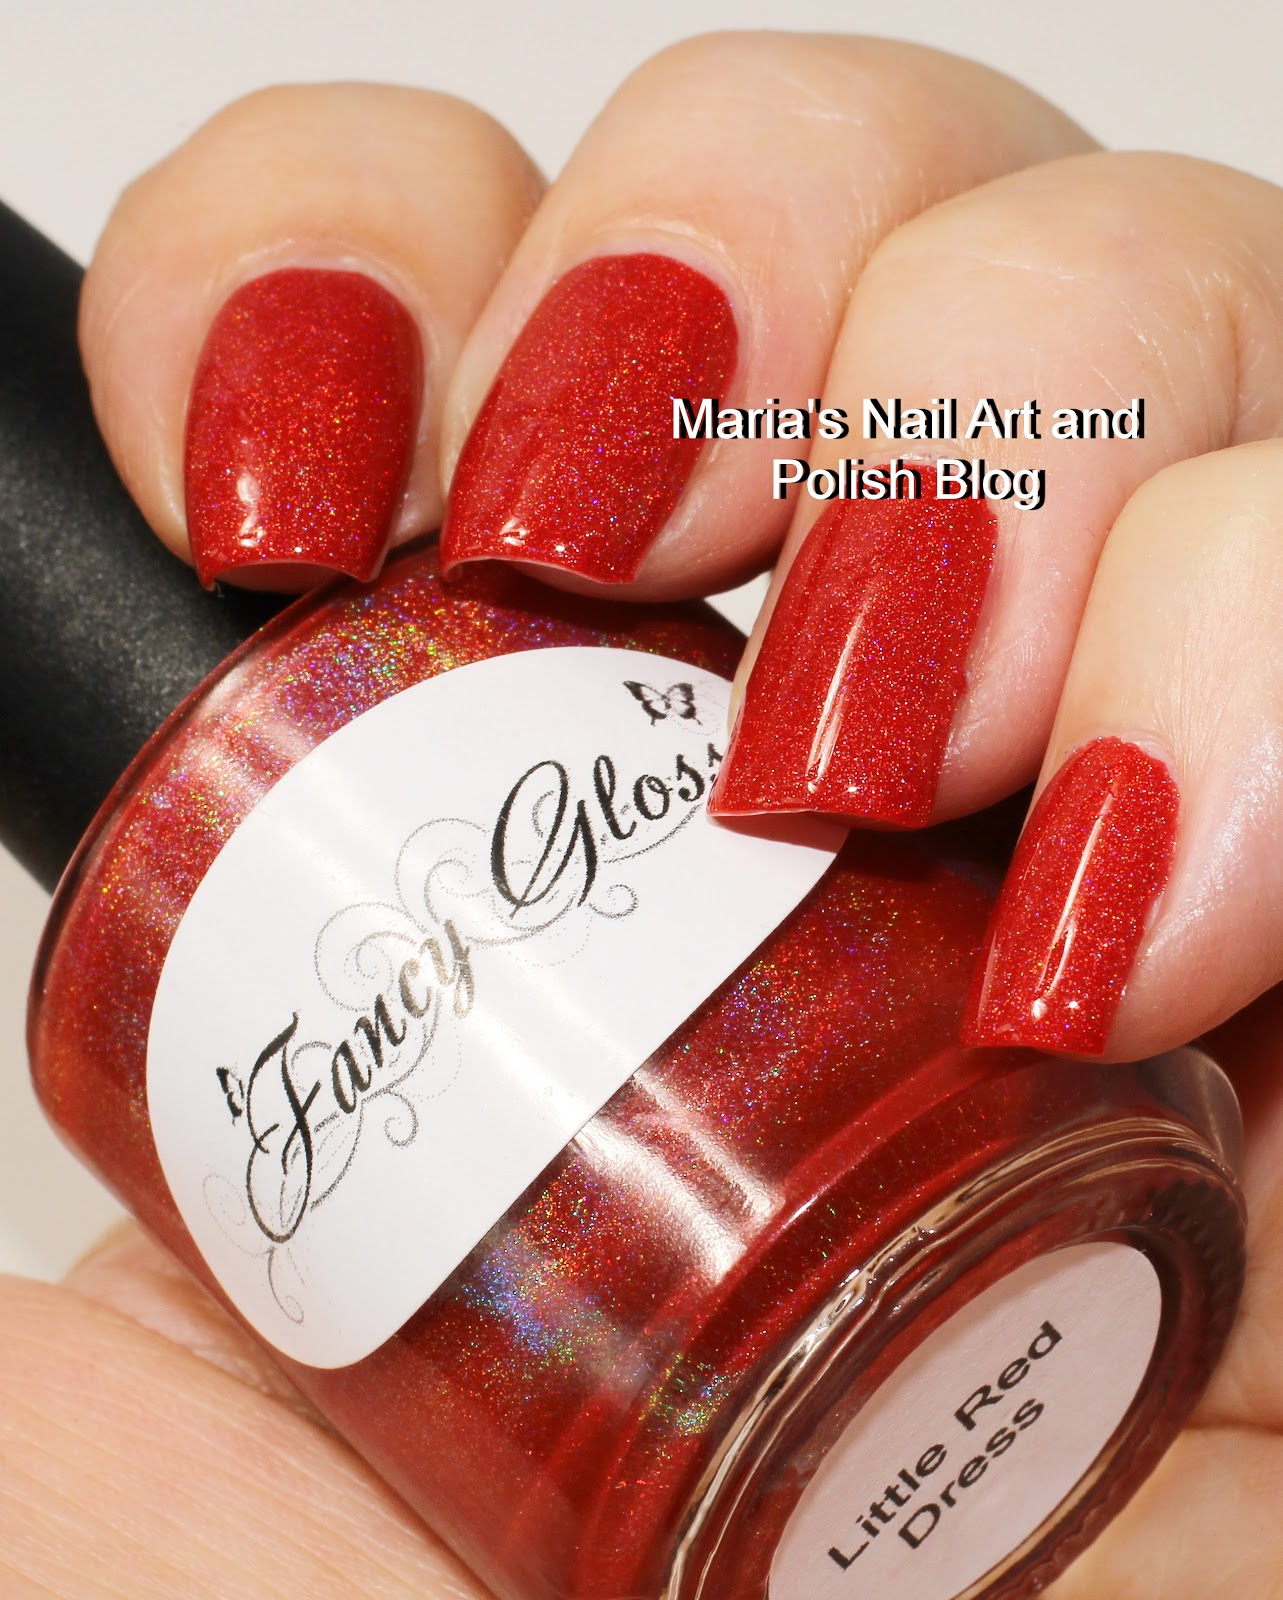 Marias Nail Art and Polish Blog: Fancy Gloss Little Red Dress swatches